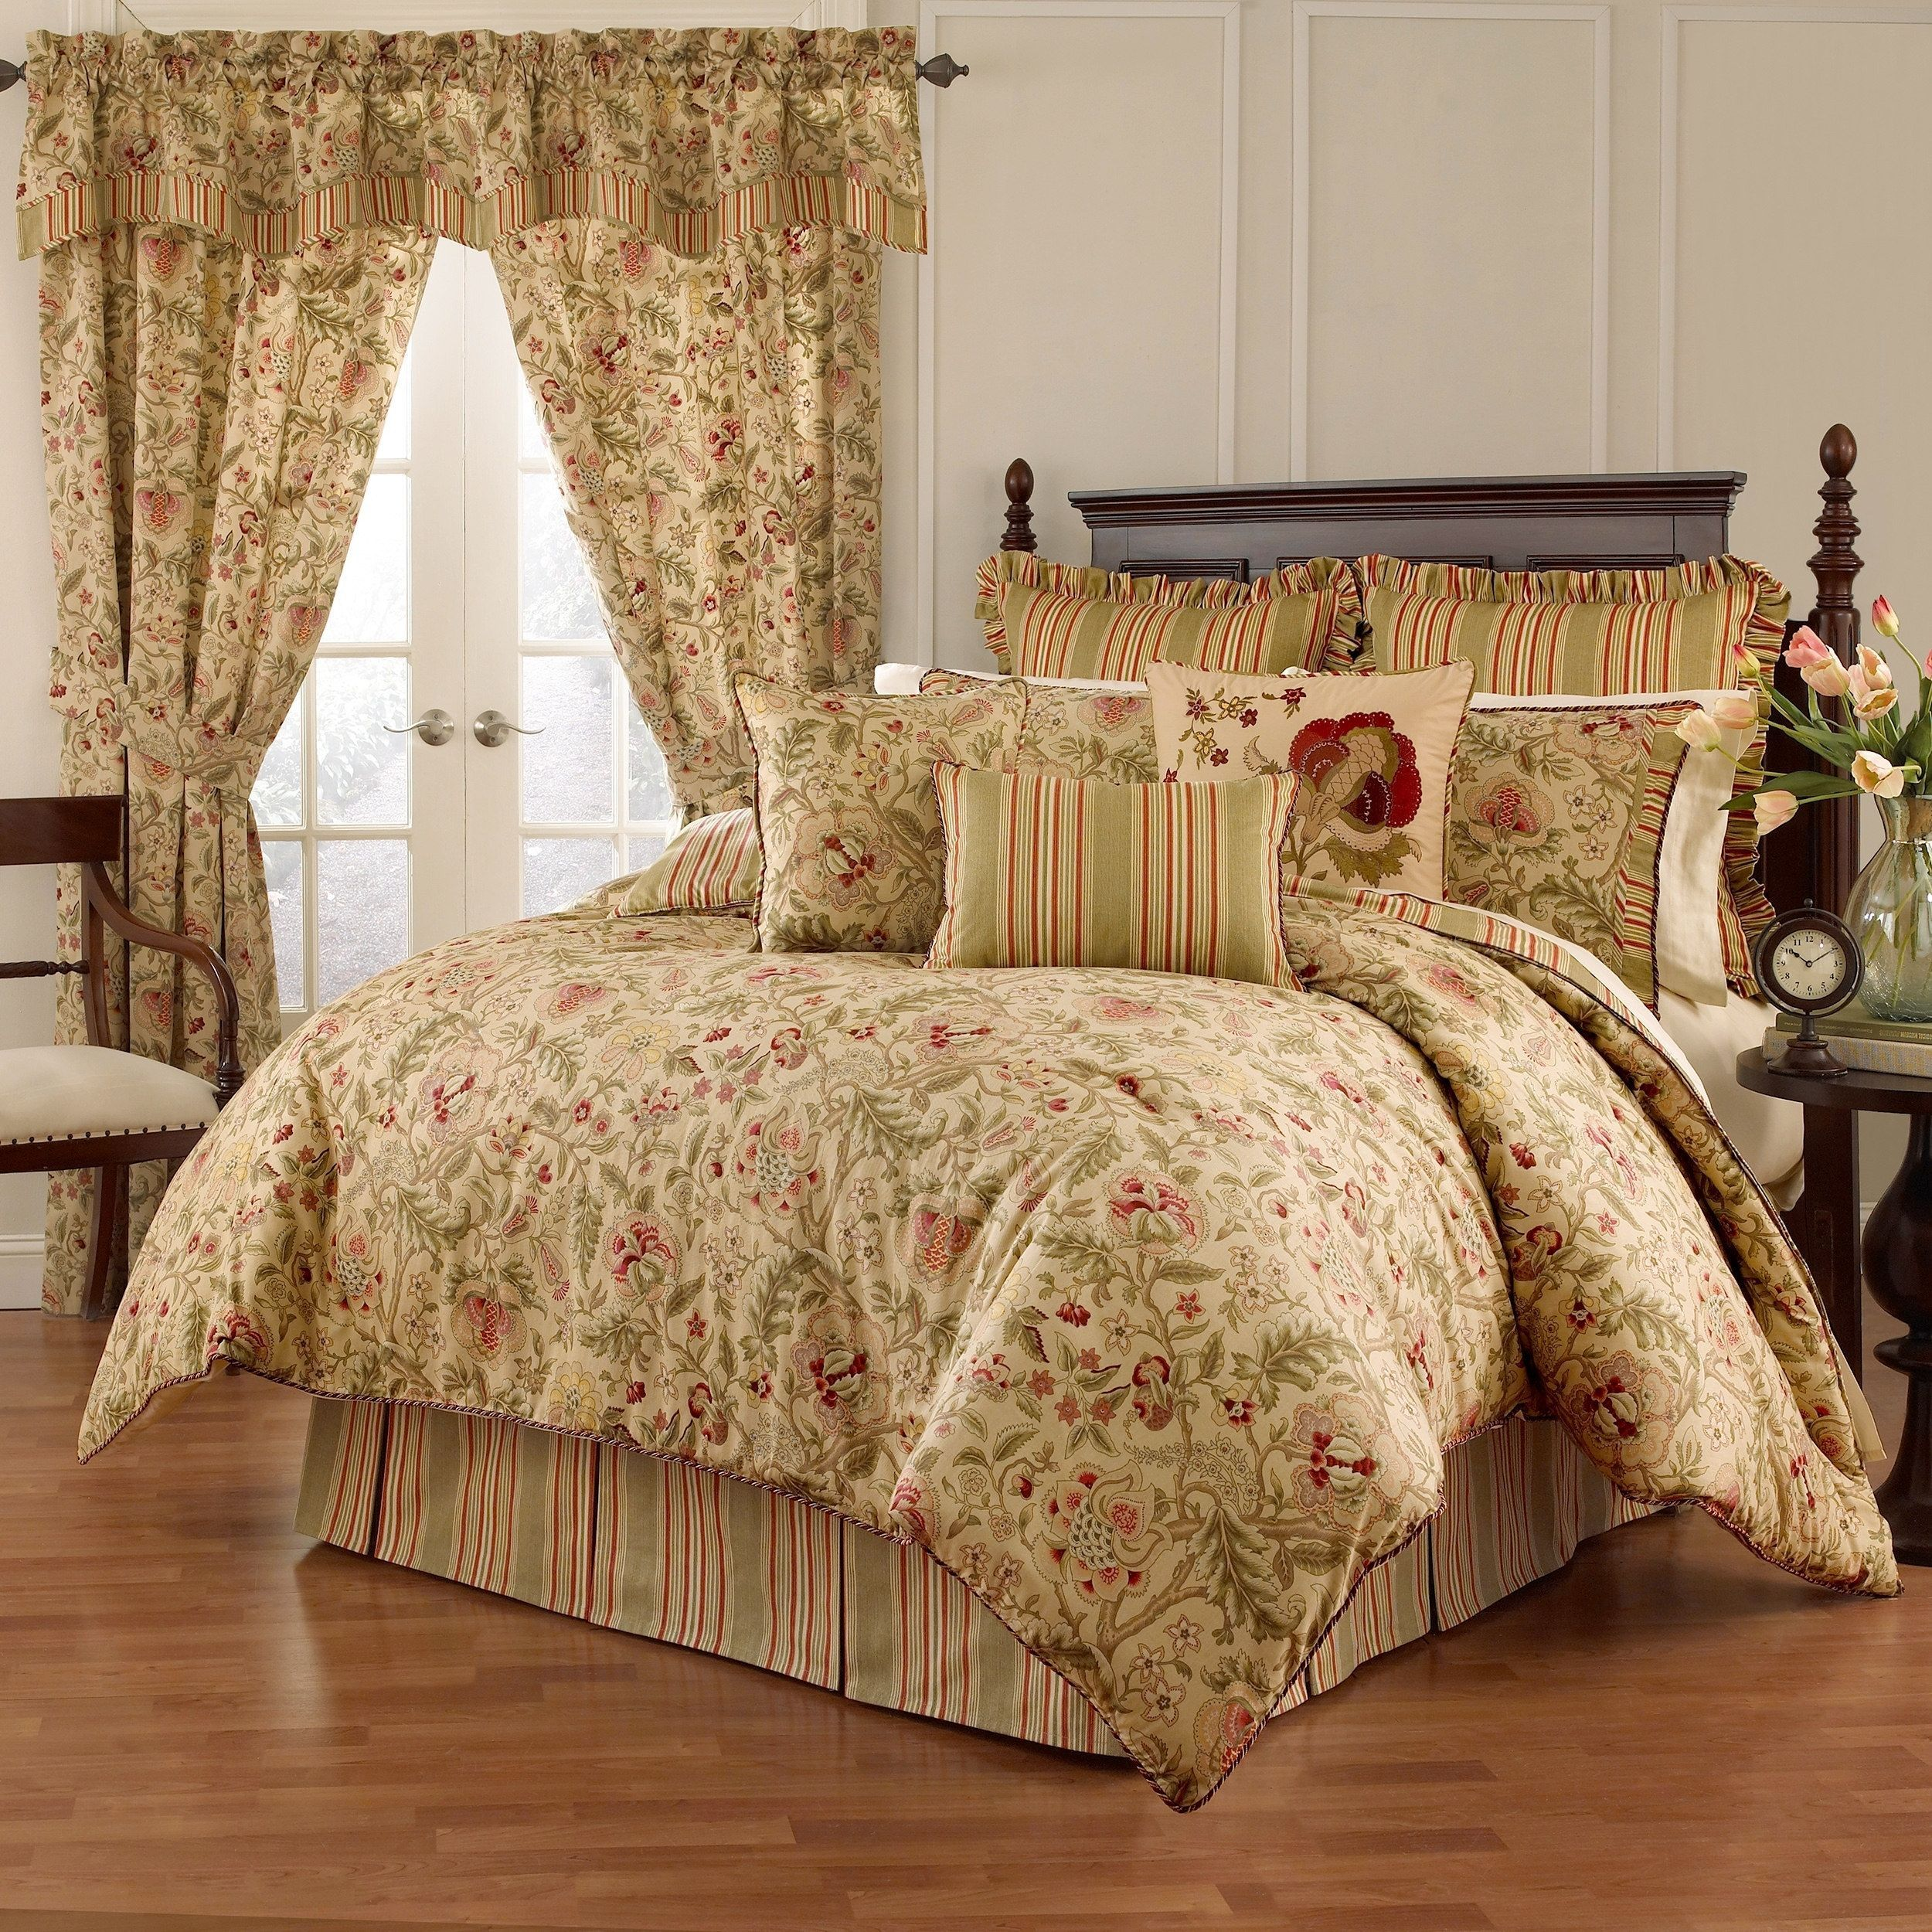 Waverly Imperial Dress Antique 4 Piece Comforter Set Comforter